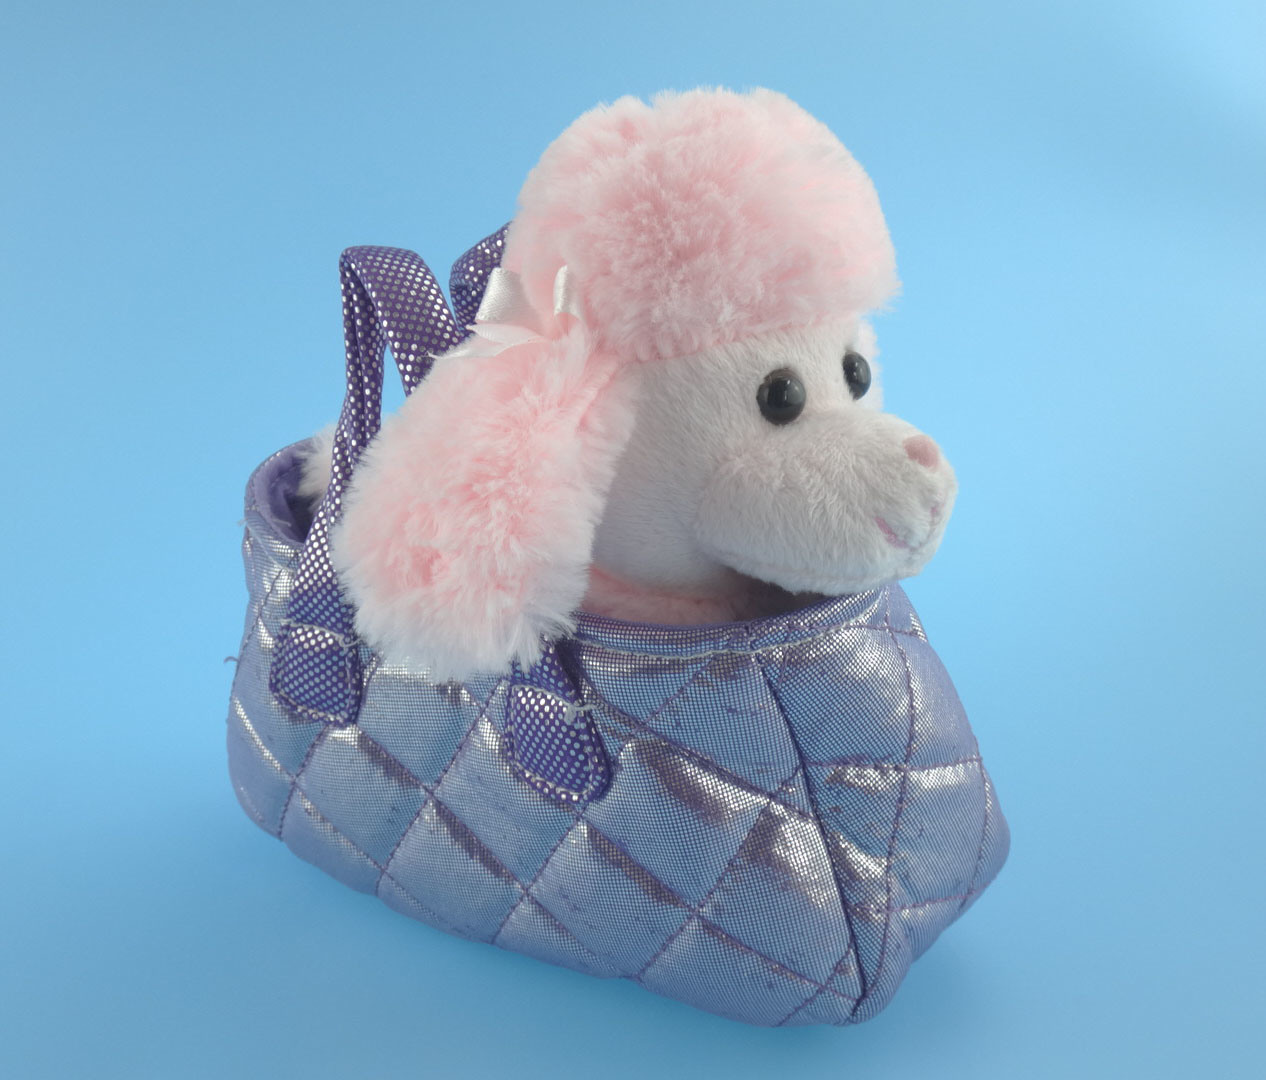 Cute Plush Toy Poodle/Dog with Her Bag